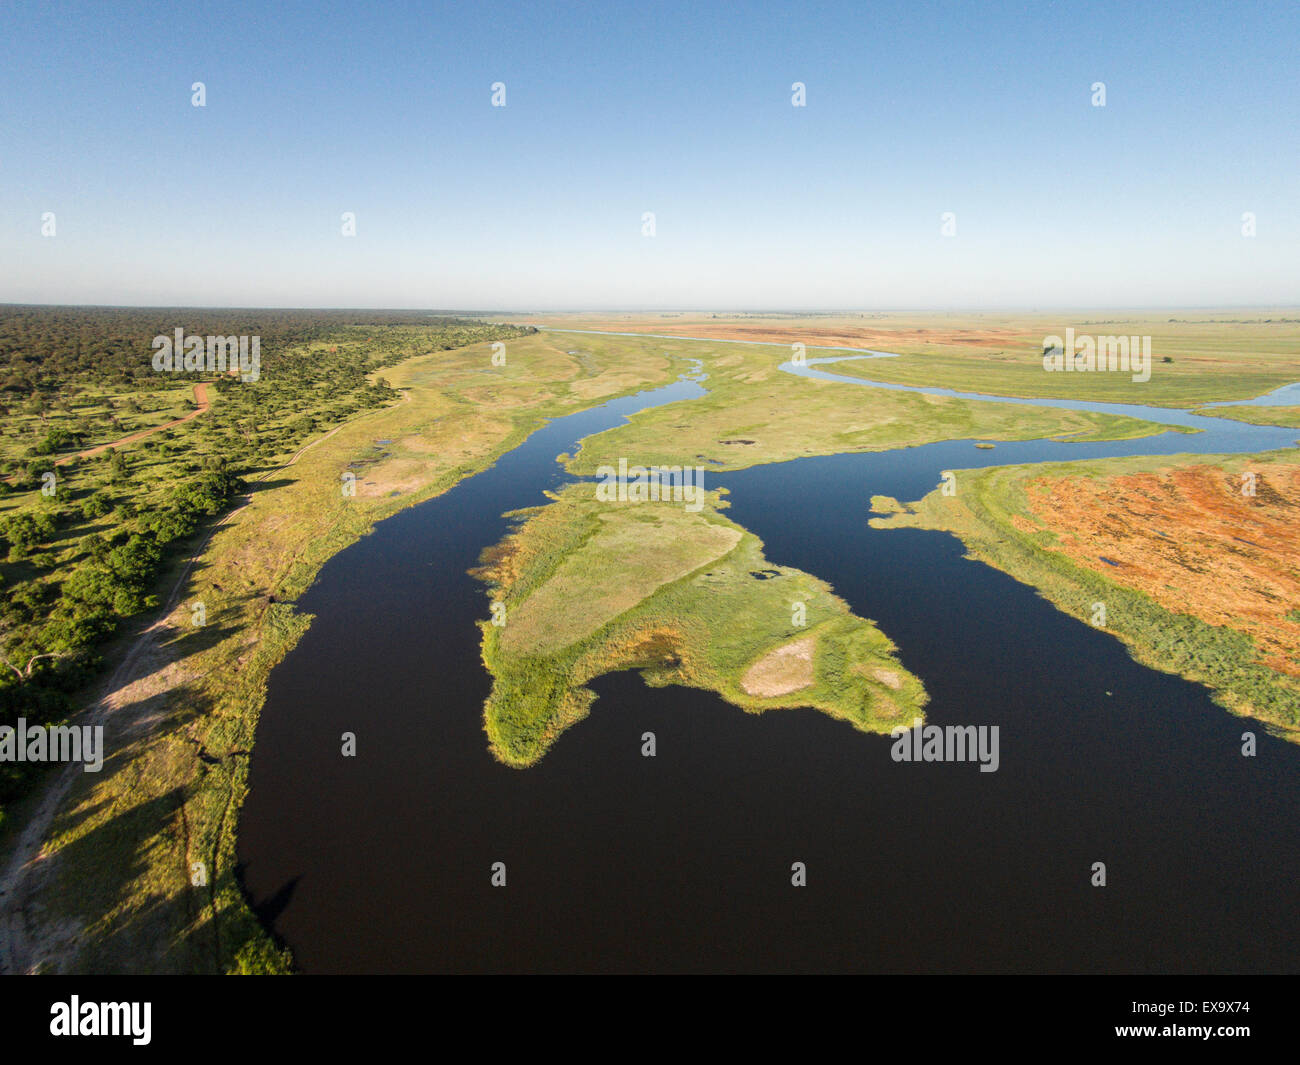 Africa, Botswana, Chobe National Park, Aerial view of Chobe River in Okavango Delta near Ihaha Camp Stock Photo